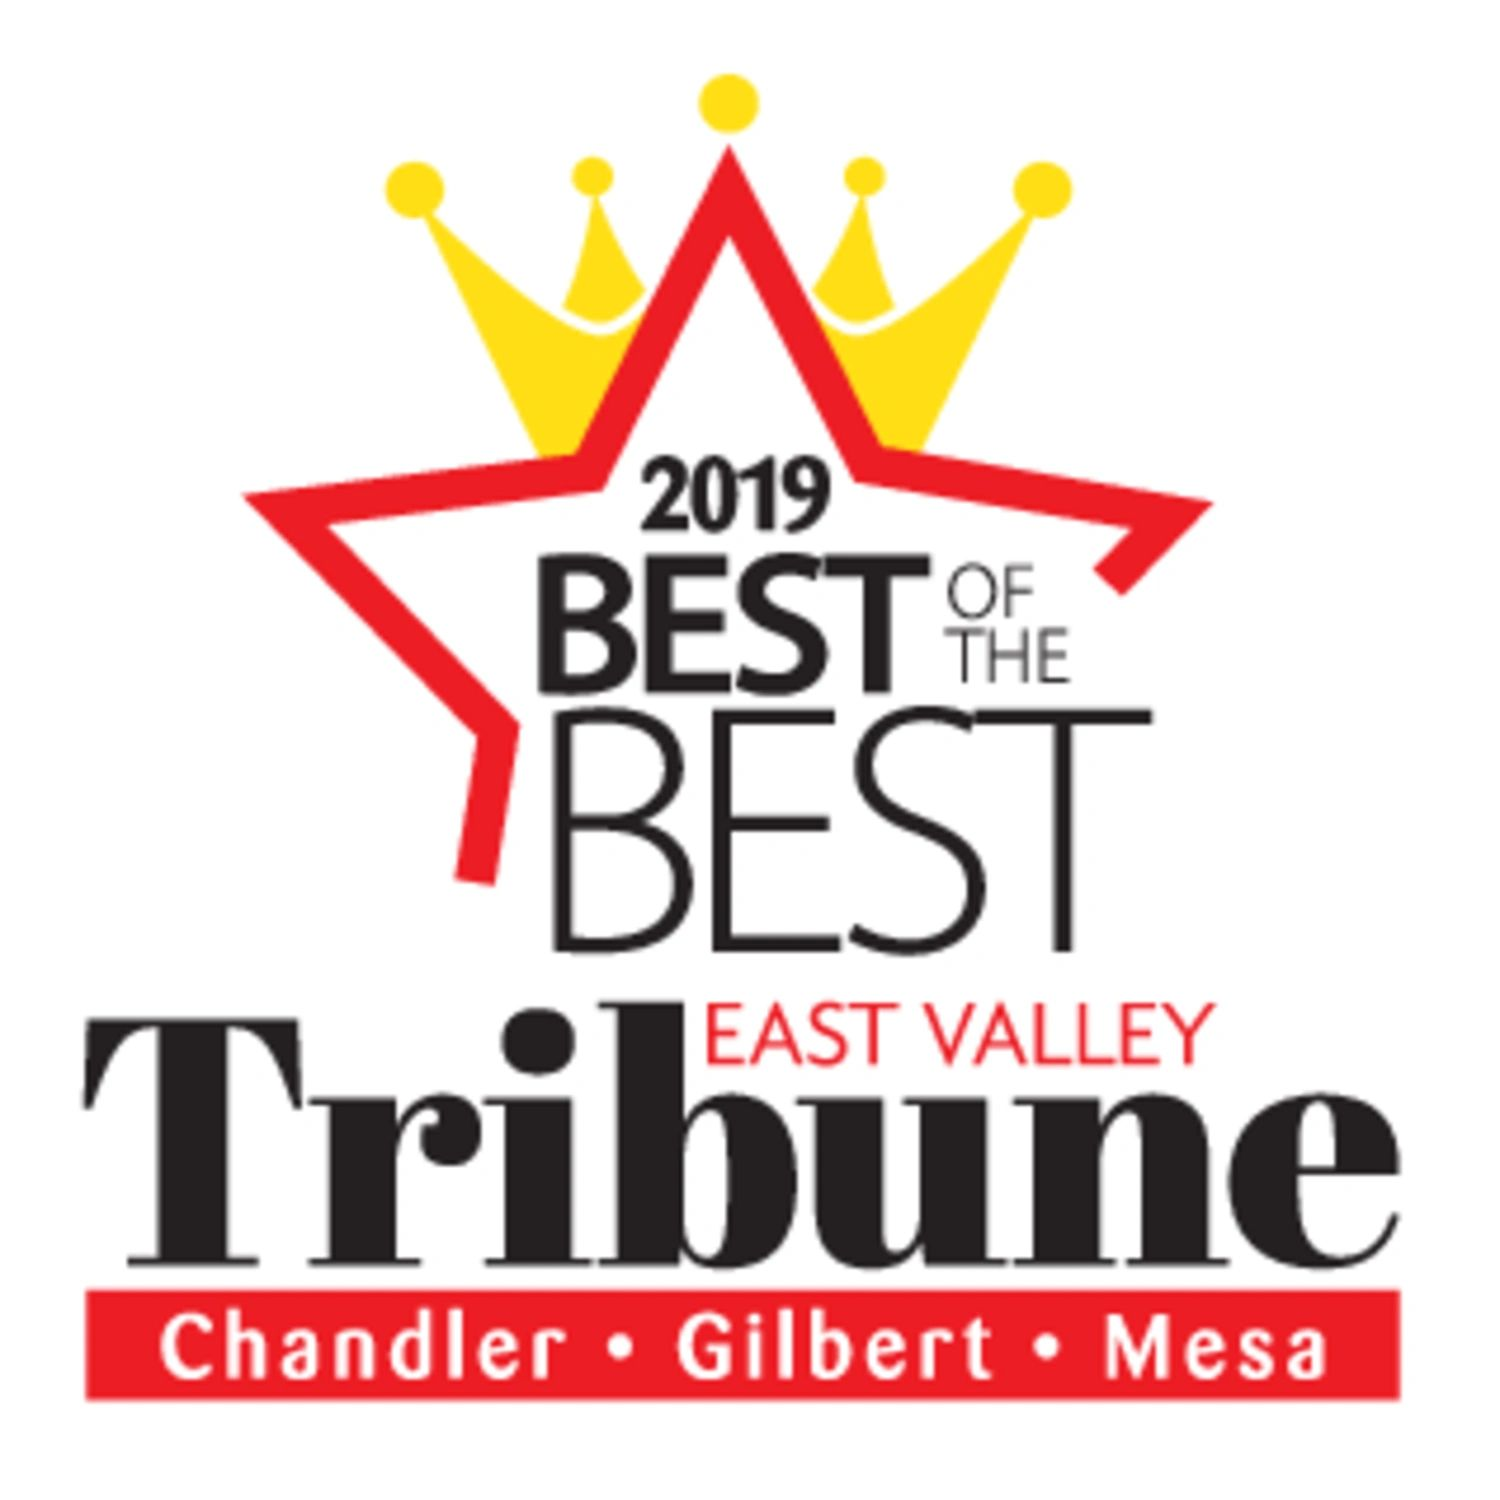 Thrive Regenerative Medicine - voted Best of the Best by The East Valley Tribune for Men's Wellness